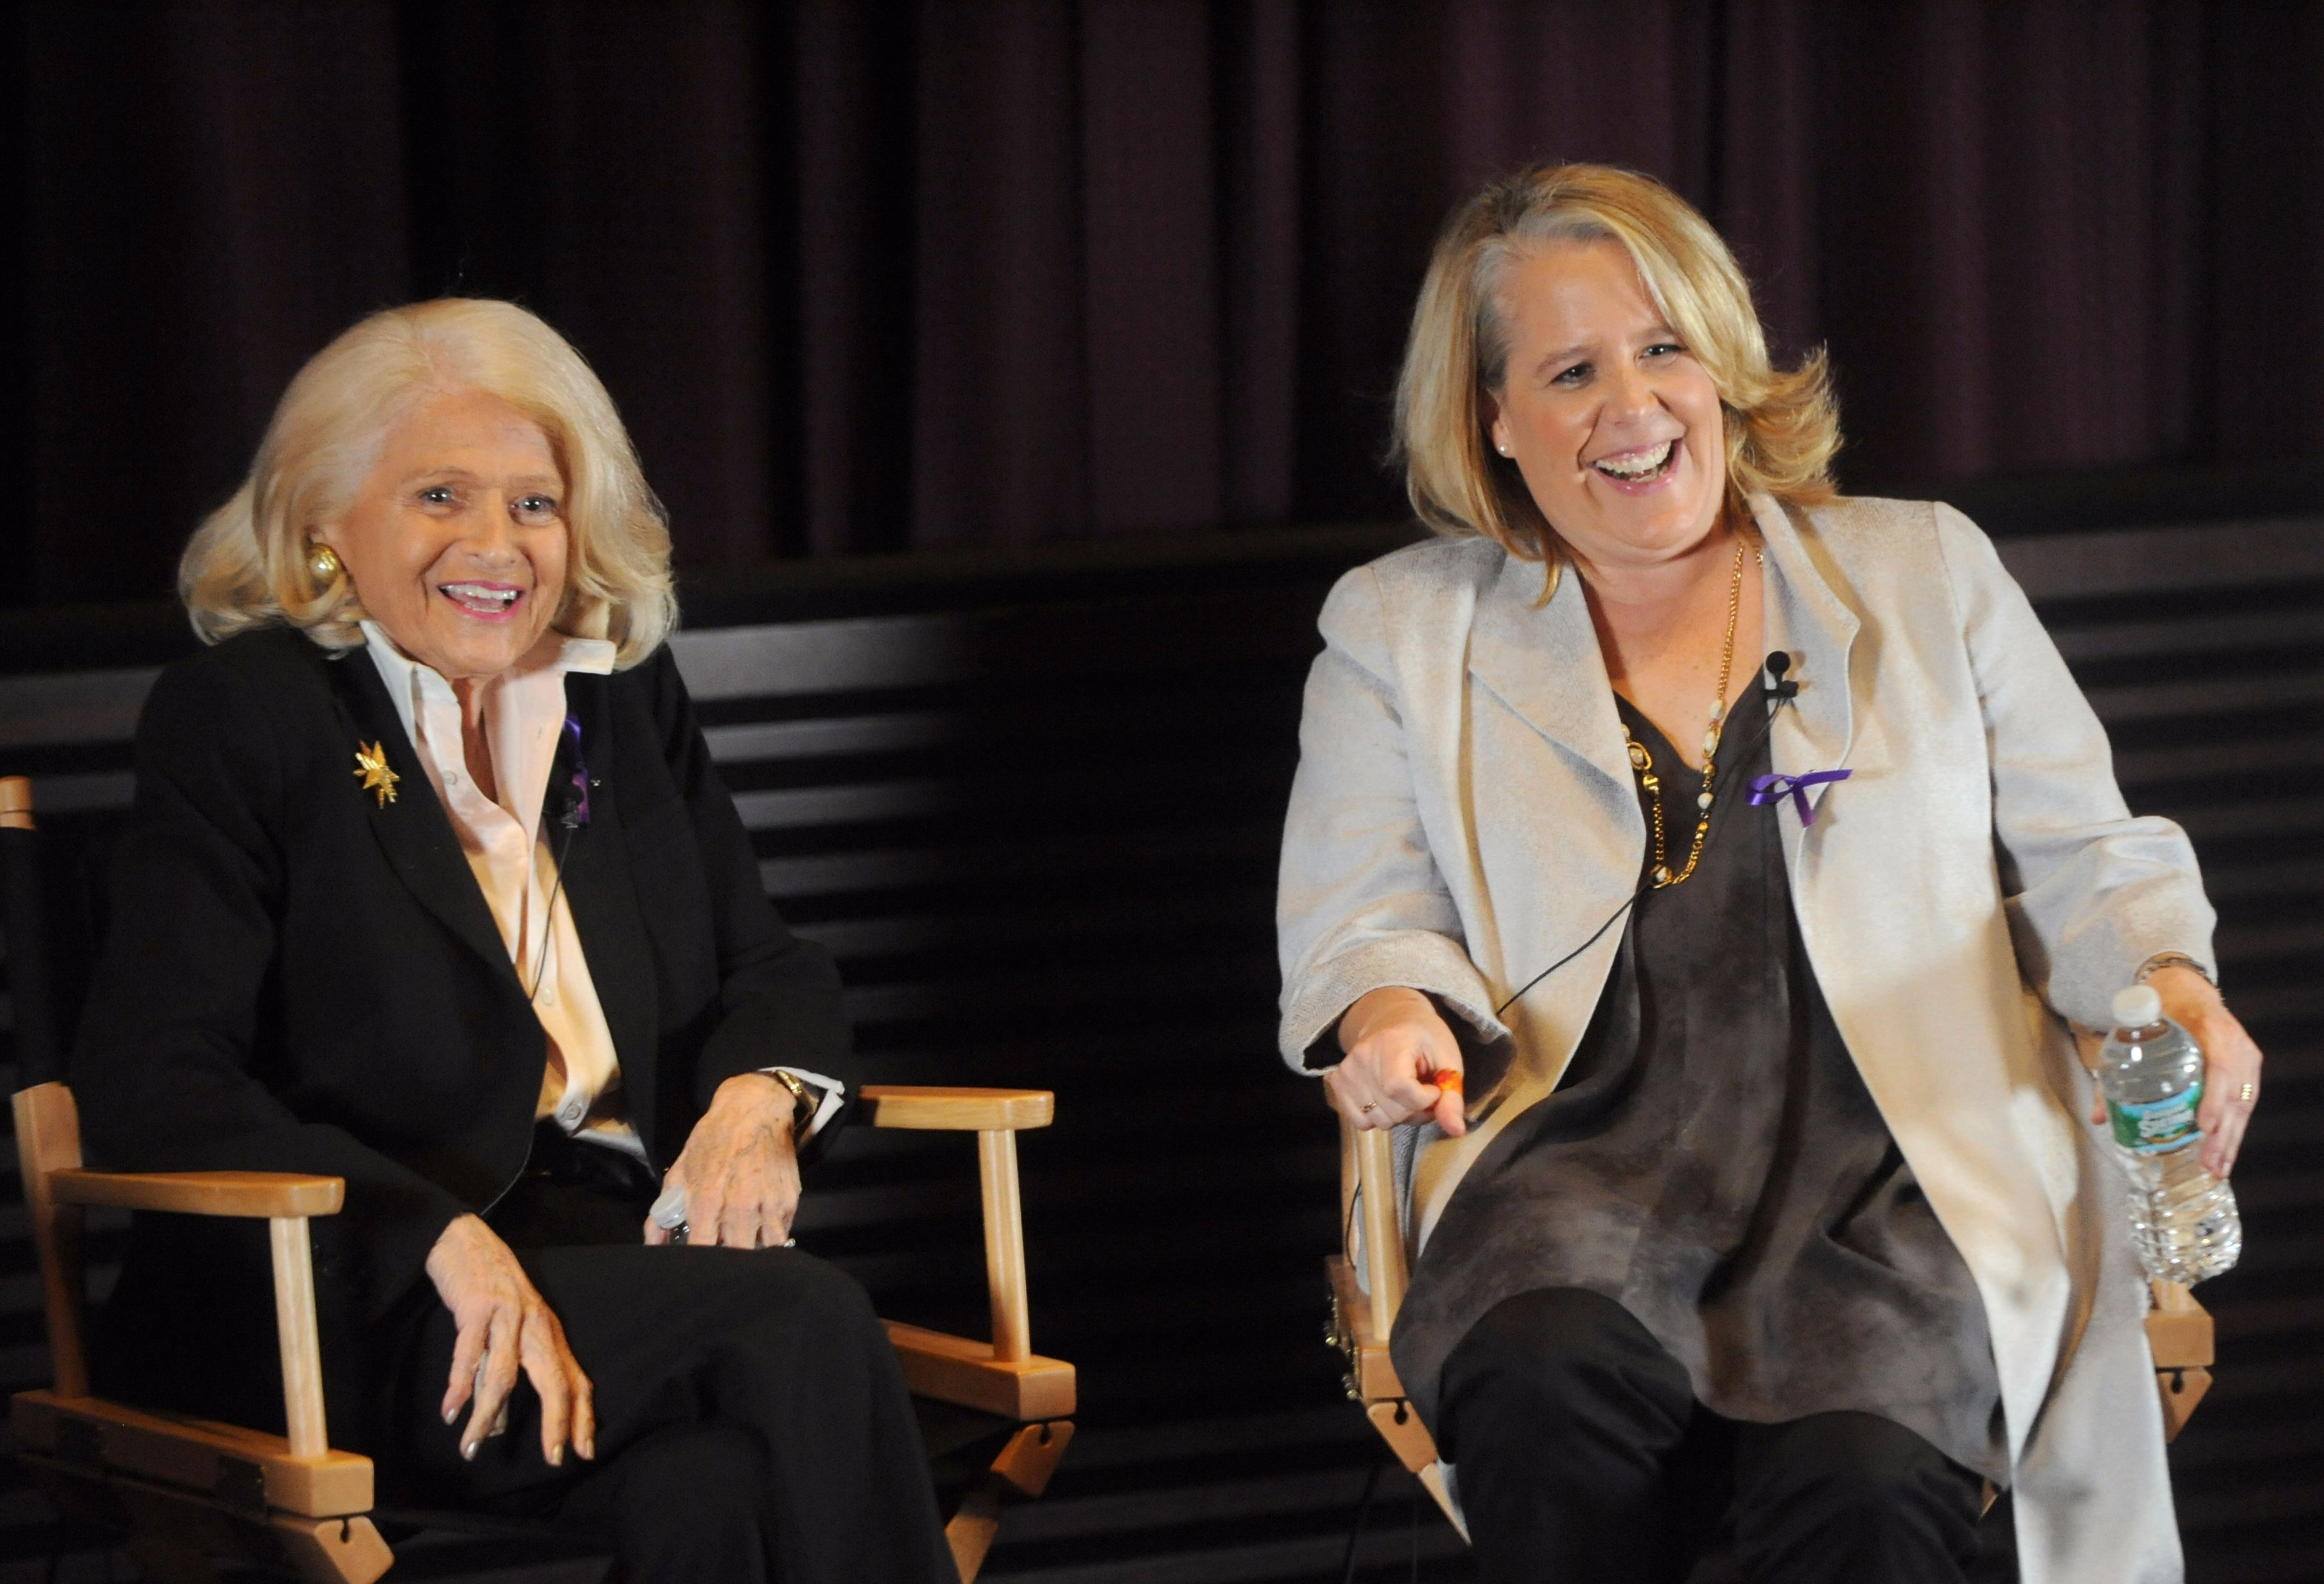 Robert Kaplan, right, sitting with Edie Windsor.